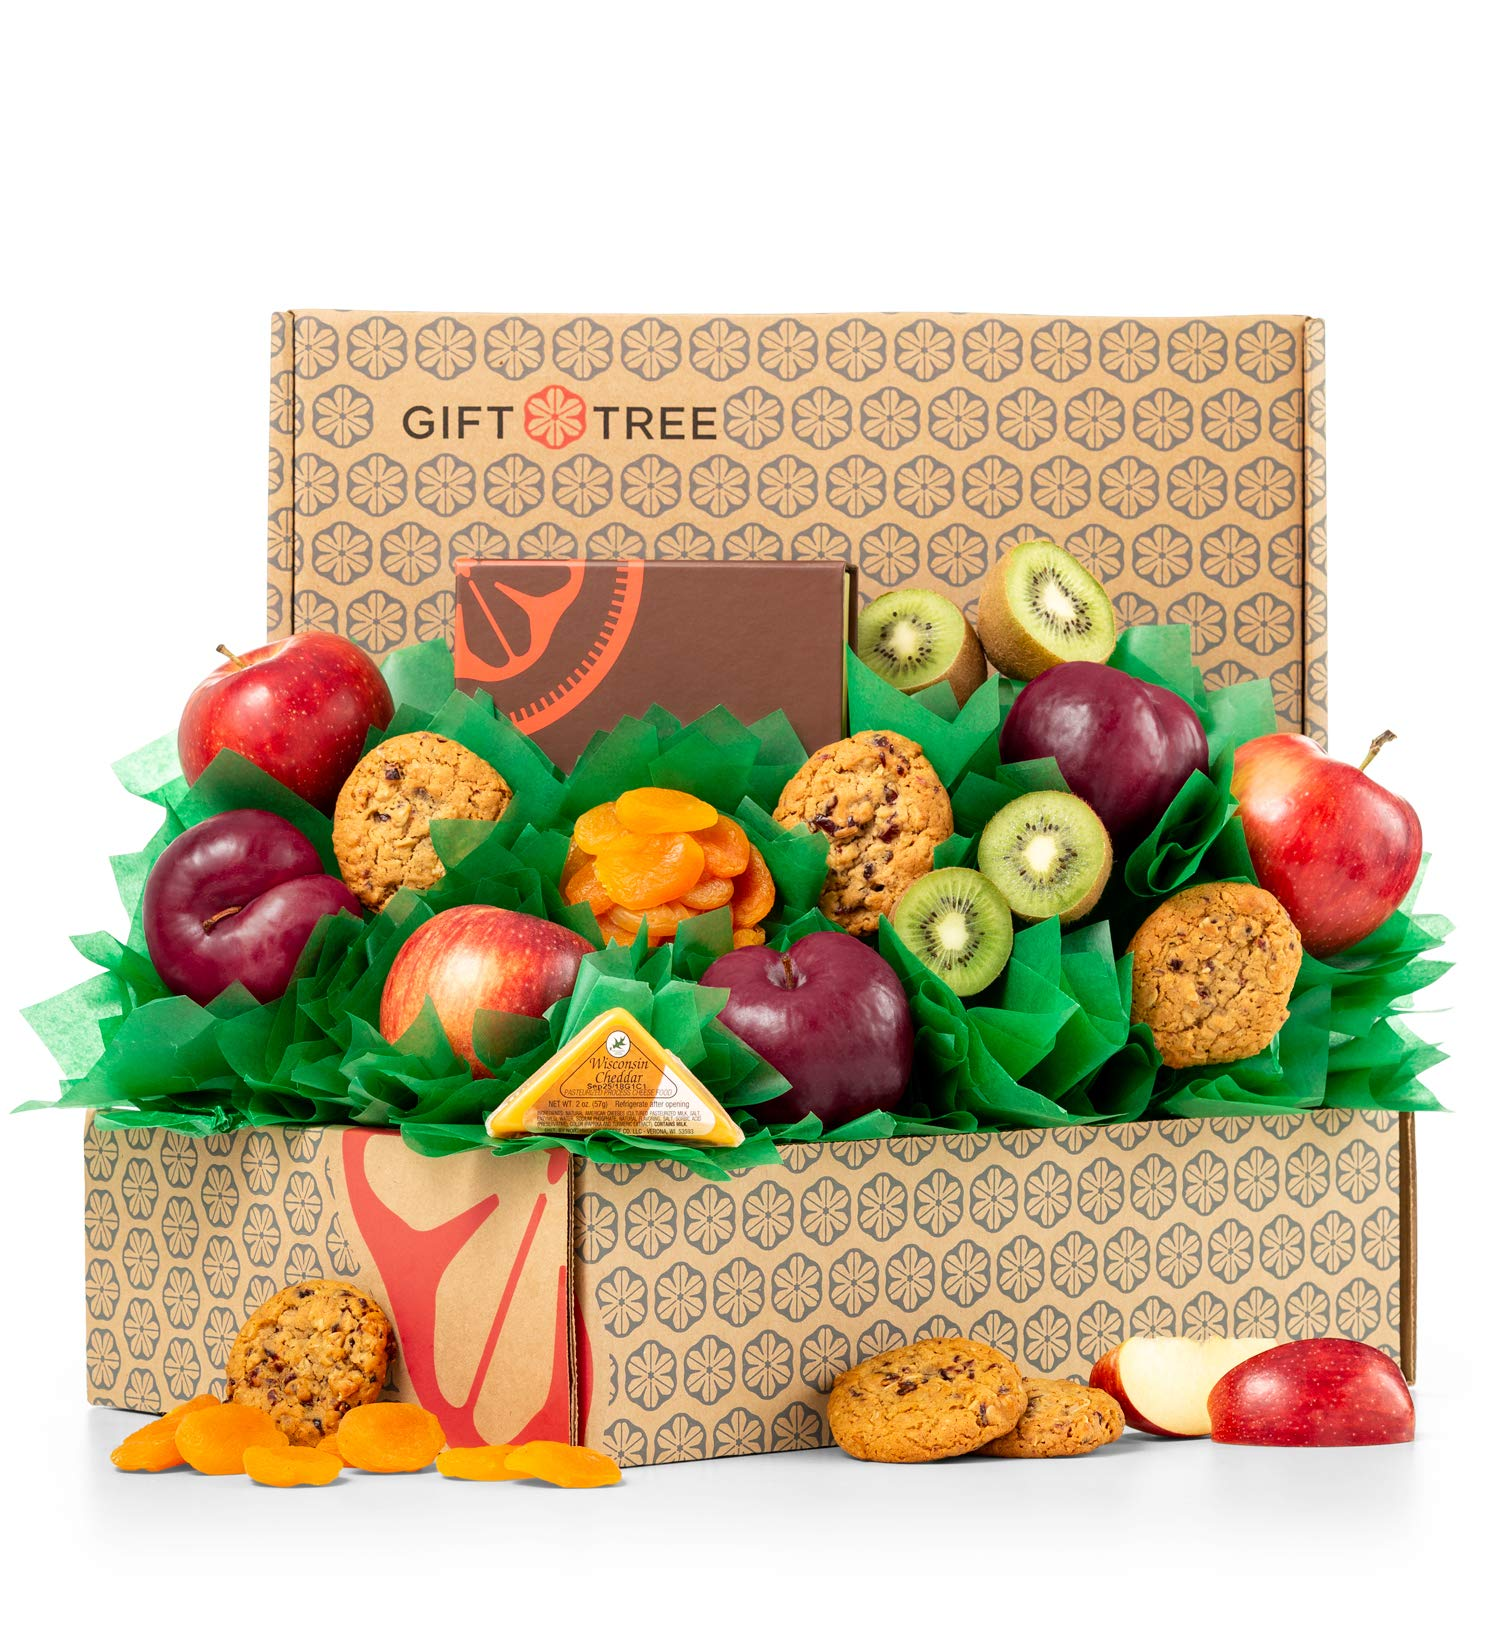 GiftTree Fresh Fruit & Cookies Gift Basket | Box Includes Apples, Kiwis, Plums, Oatmeal Cookies, Wisconsin Cheddar Cheese & more | Perfect Thank You, Birthday, and Holiday Present by GiftTree (Image #1)